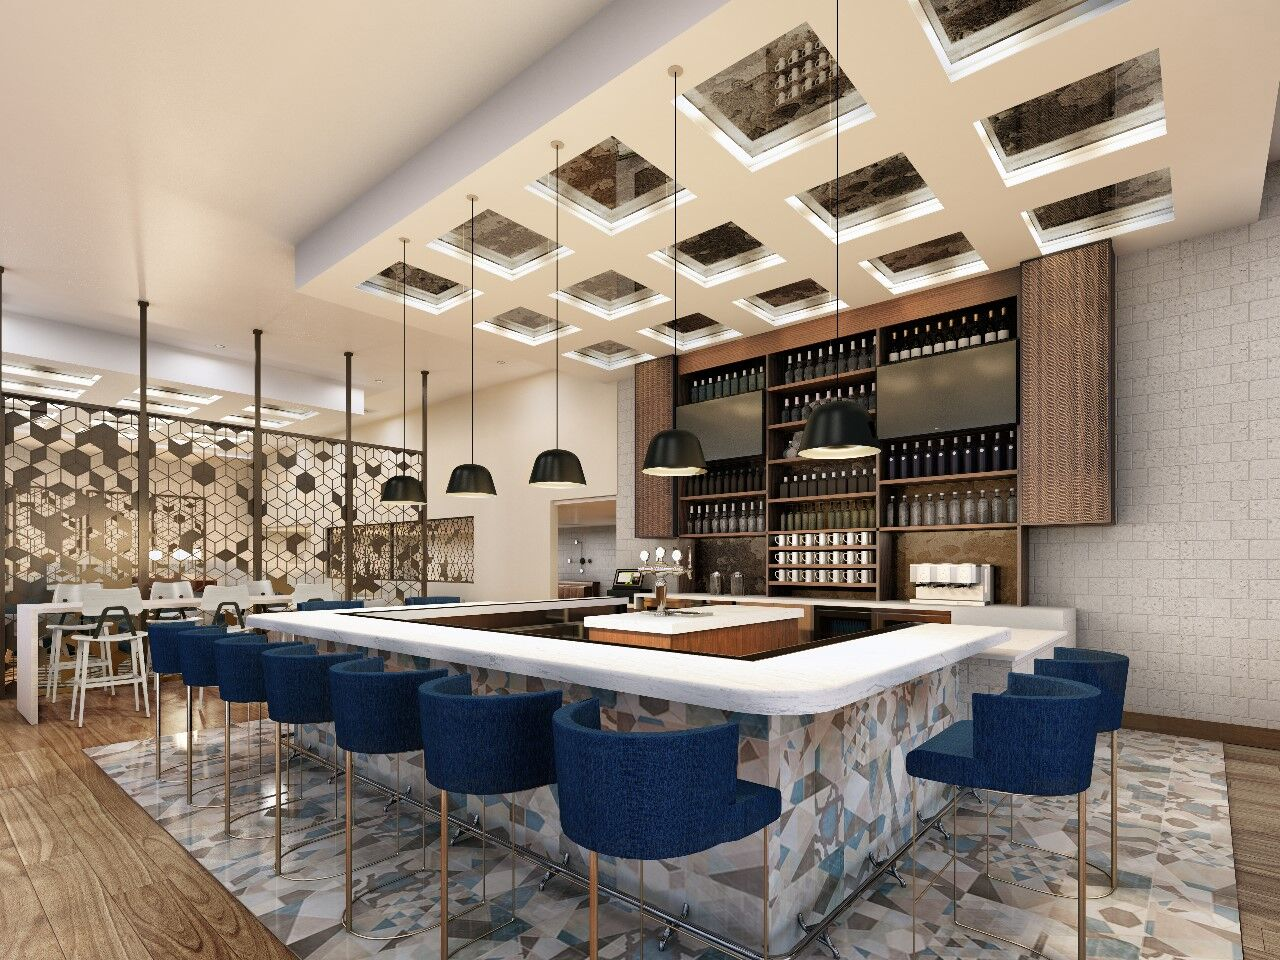 Little Italy Luxury Hotel Reveals Rooftop Bar and Restaurant